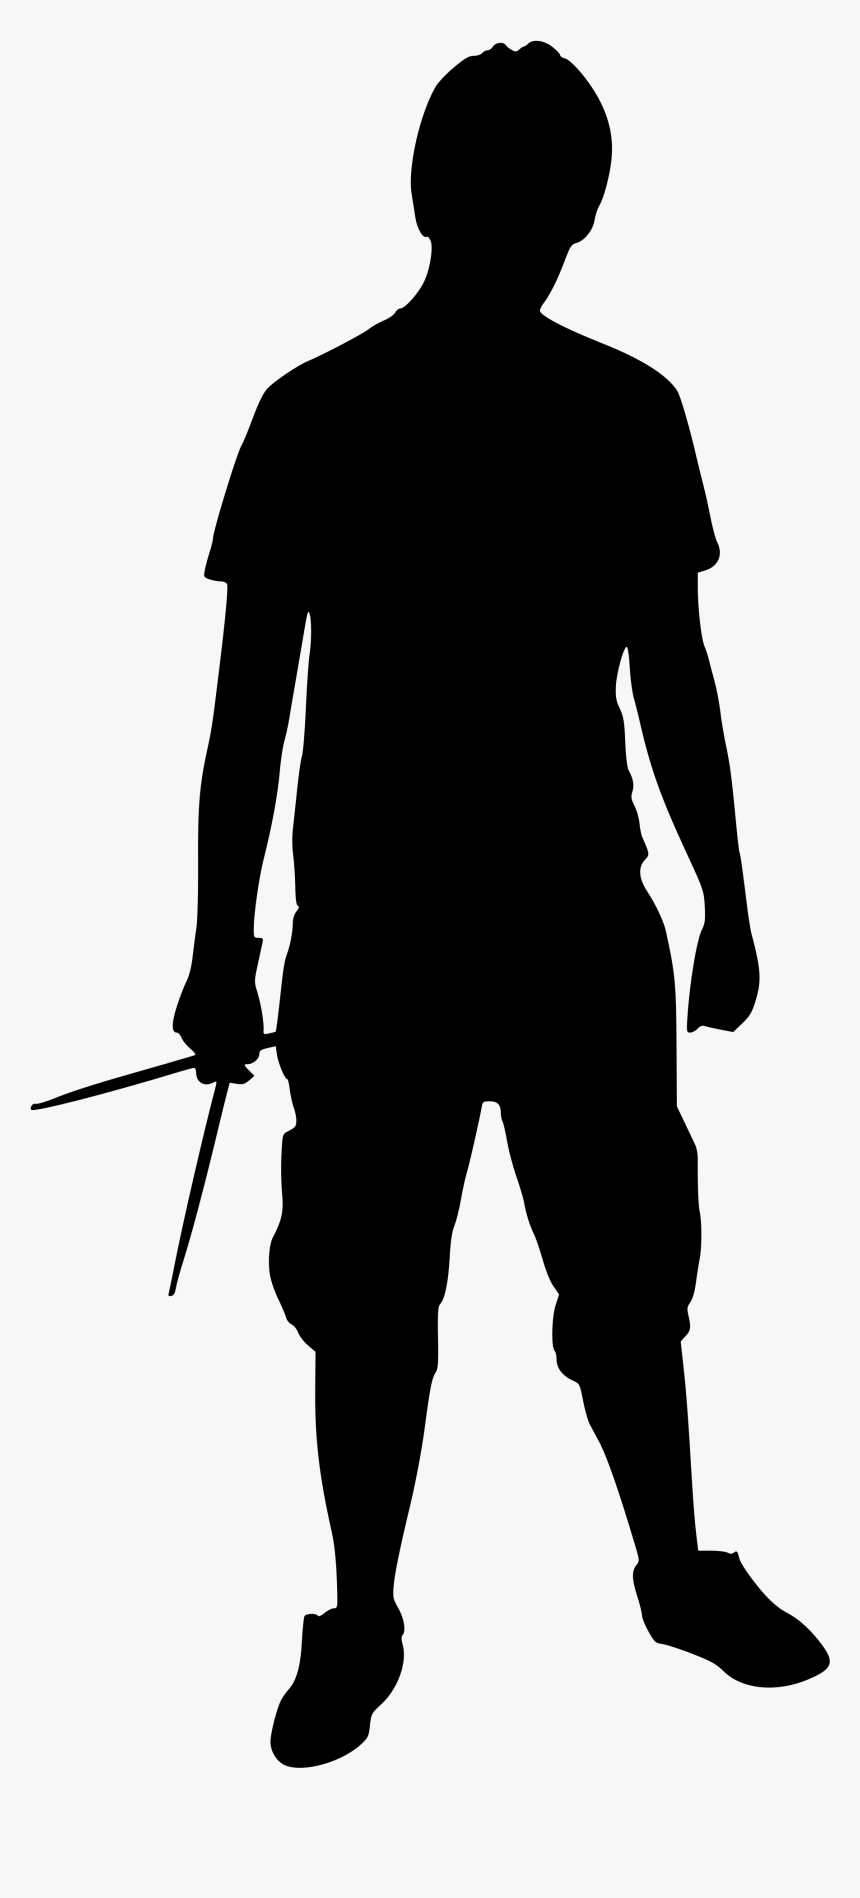 Fileband Silhouette 12 Year Old Boy Silhouette Hd Png Download Transparent Png Image Pngitem Select from premium boy silhouette images of the highest quality. 12 year old boy silhouette hd png